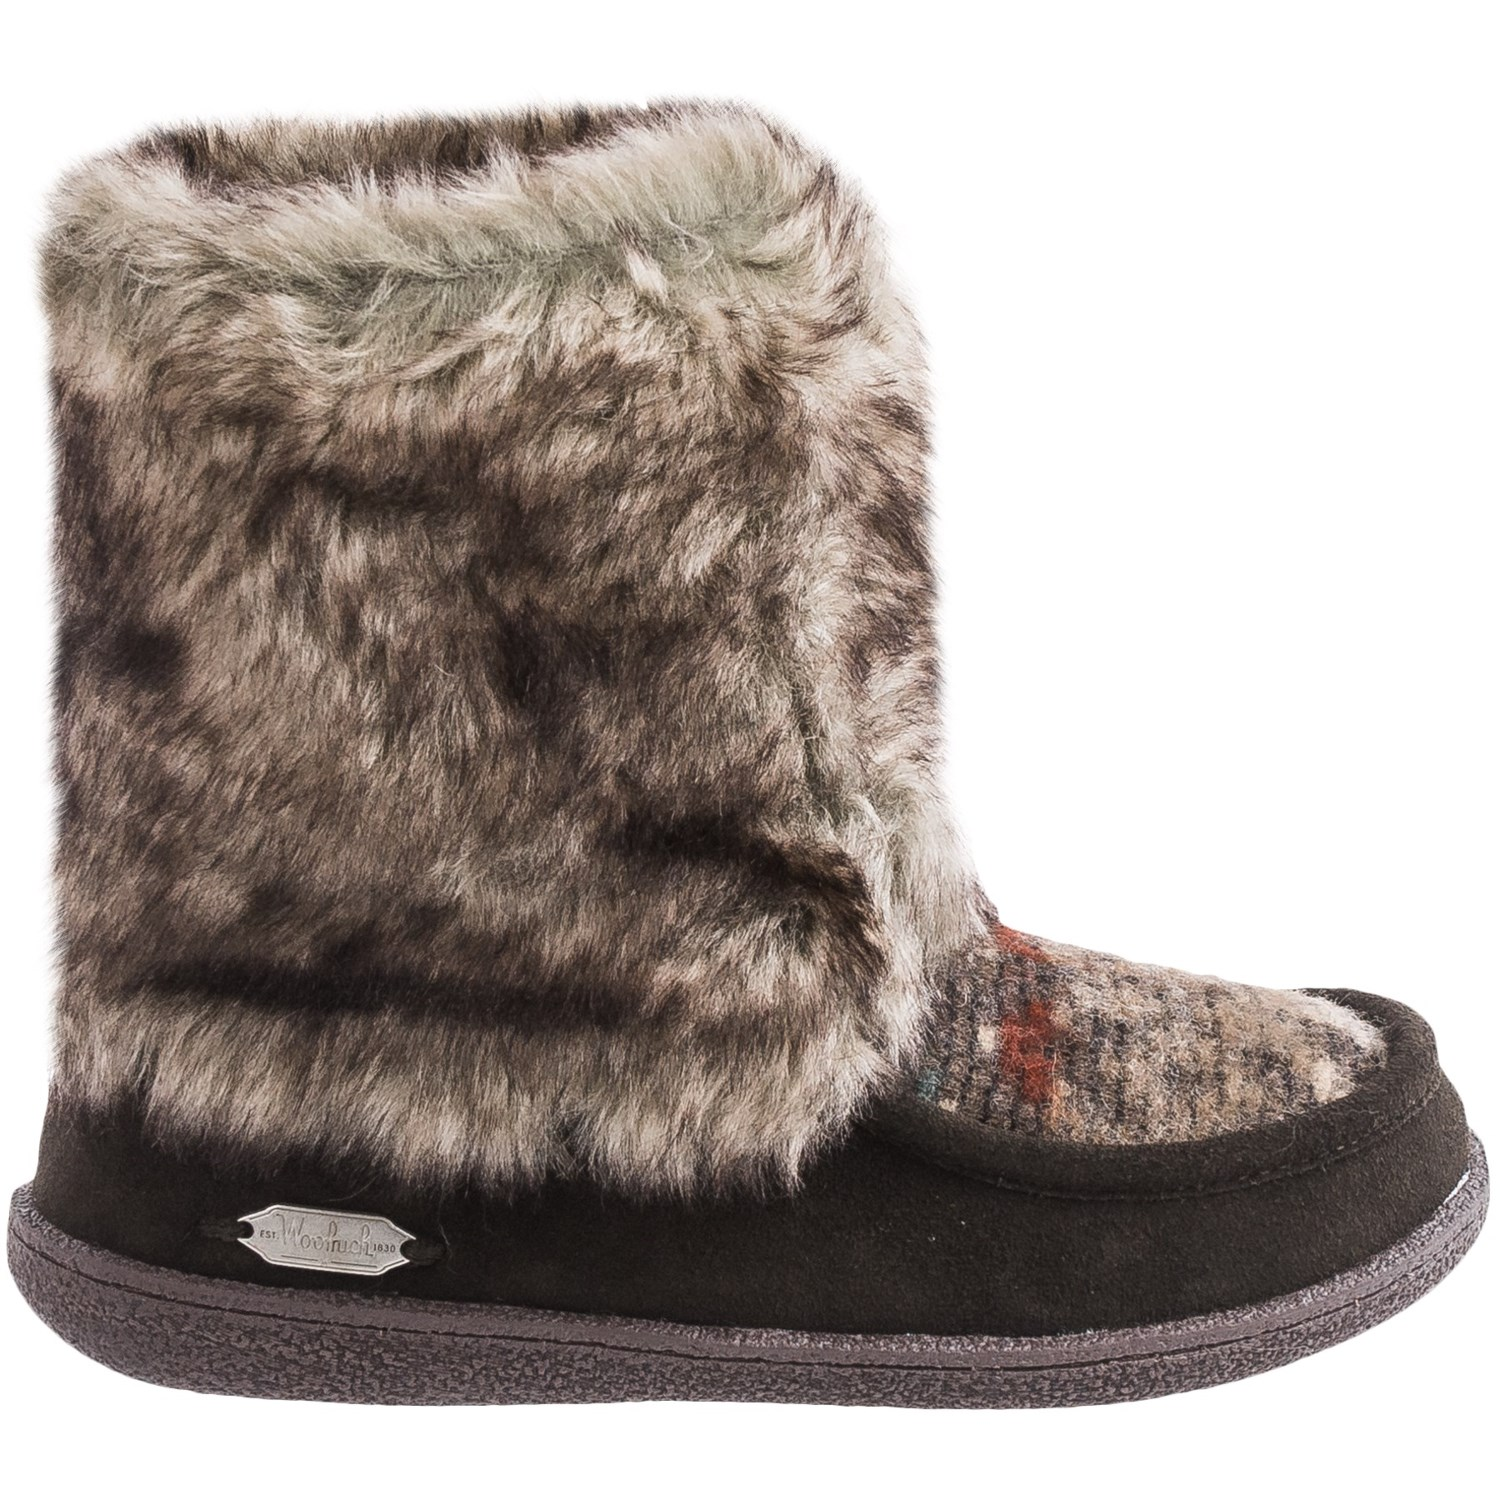 Woolrich Fall Creek Boots (For Women)